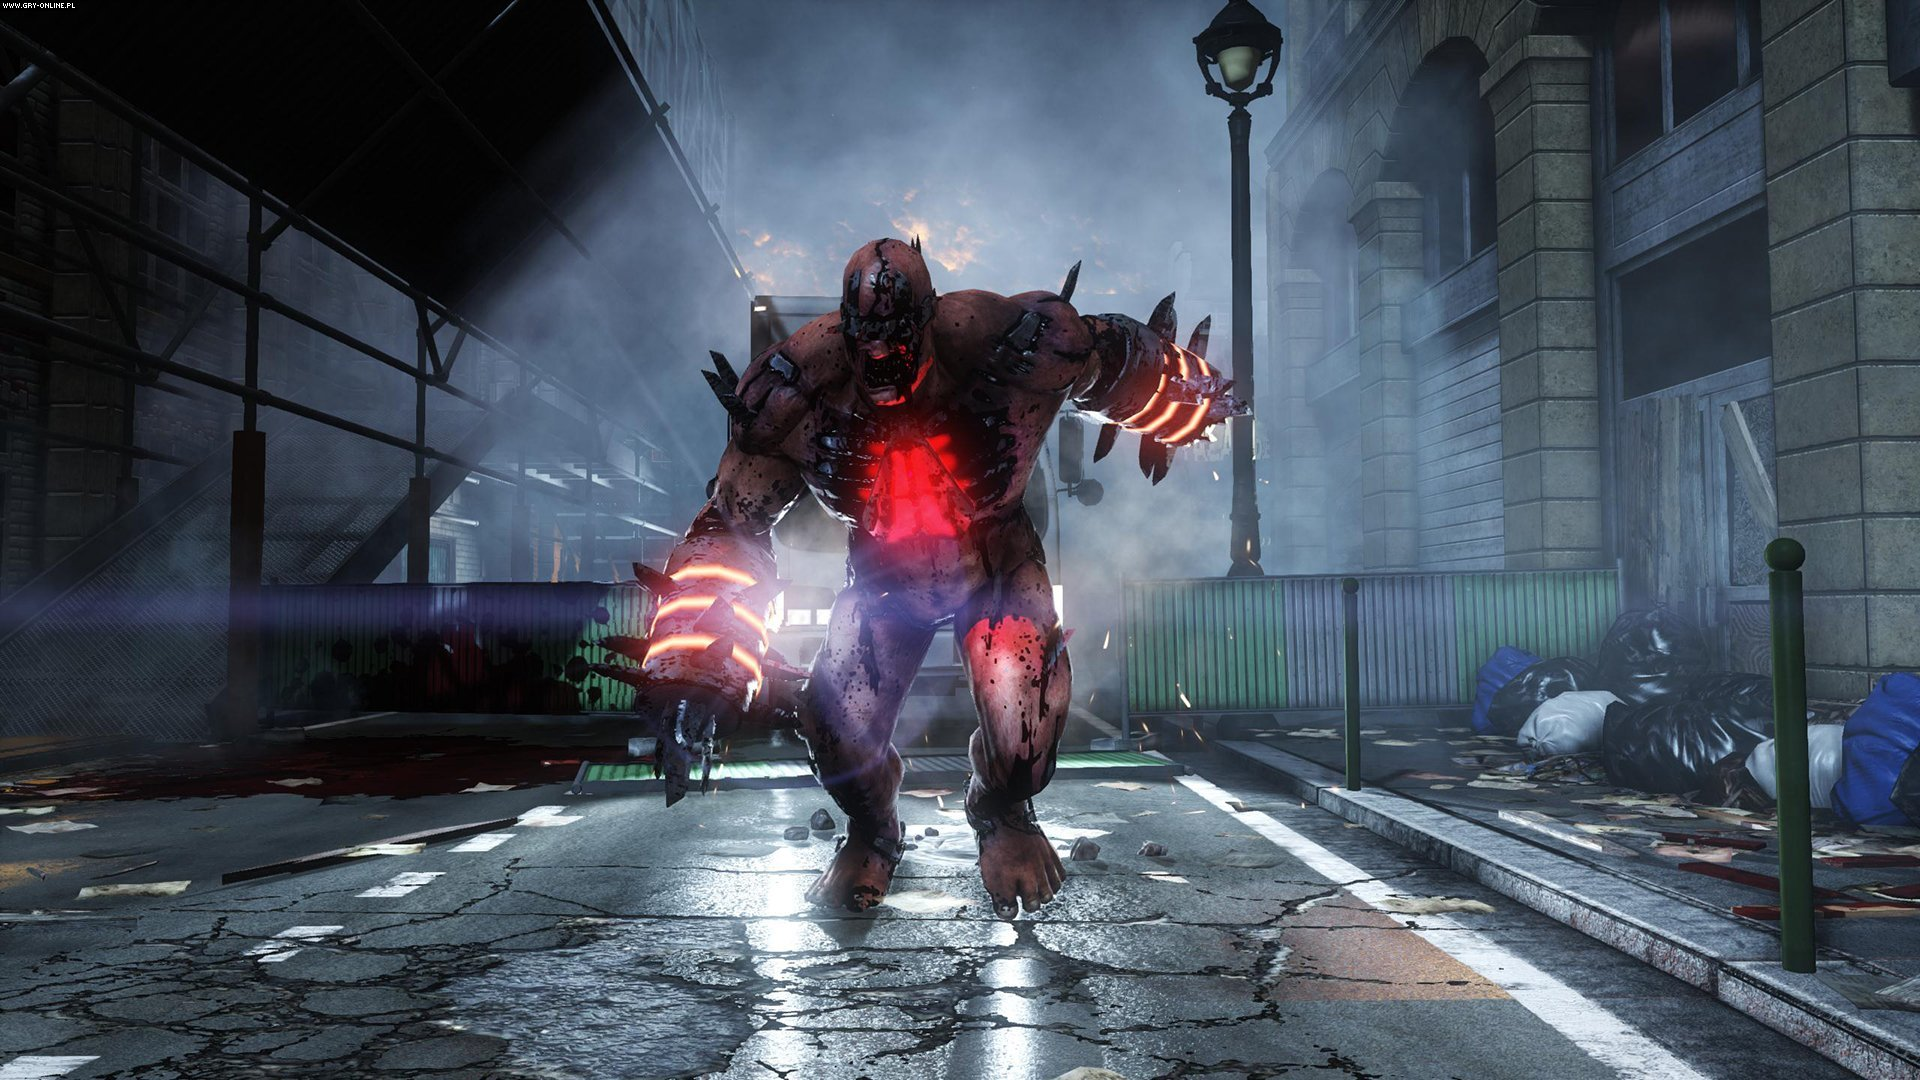 Killing Floor 2 PC, PS4 Gry Screen 168/174, Tripwire Interactive